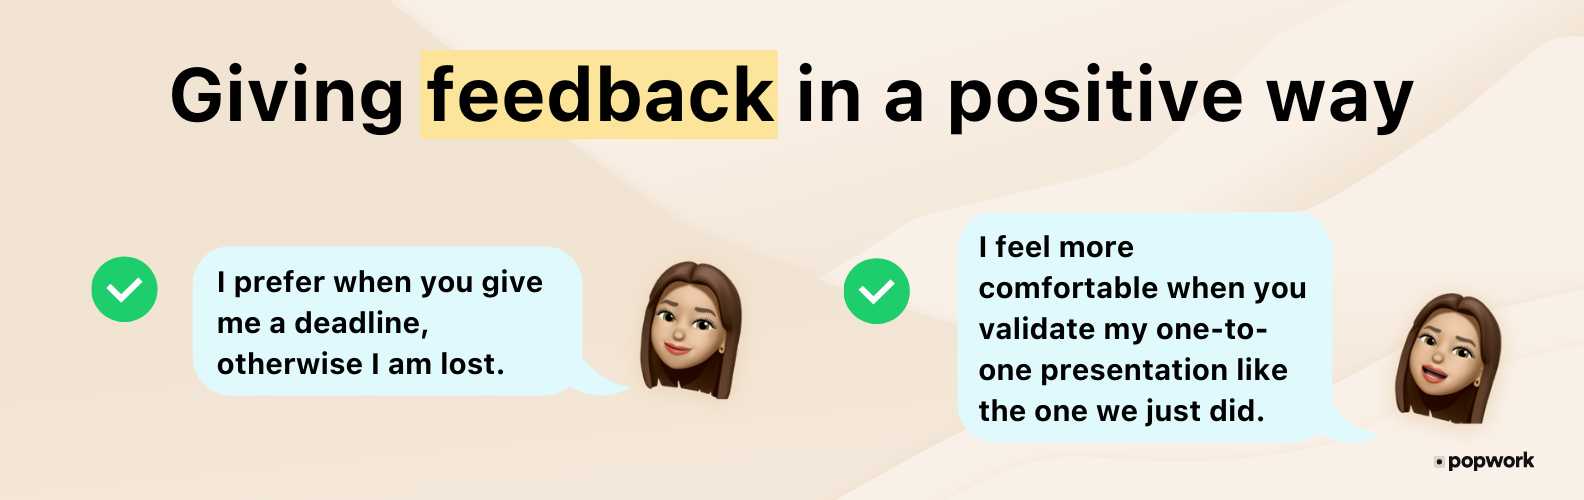 """Manage-your-boss: Giving feedback in a positive way examples: """"I prefer when you give me a deadline, otherwise I am lost."""" , """"I feel more comfortable when you validate my one-to-one presentation like the one we just did."""" - Popwork"""